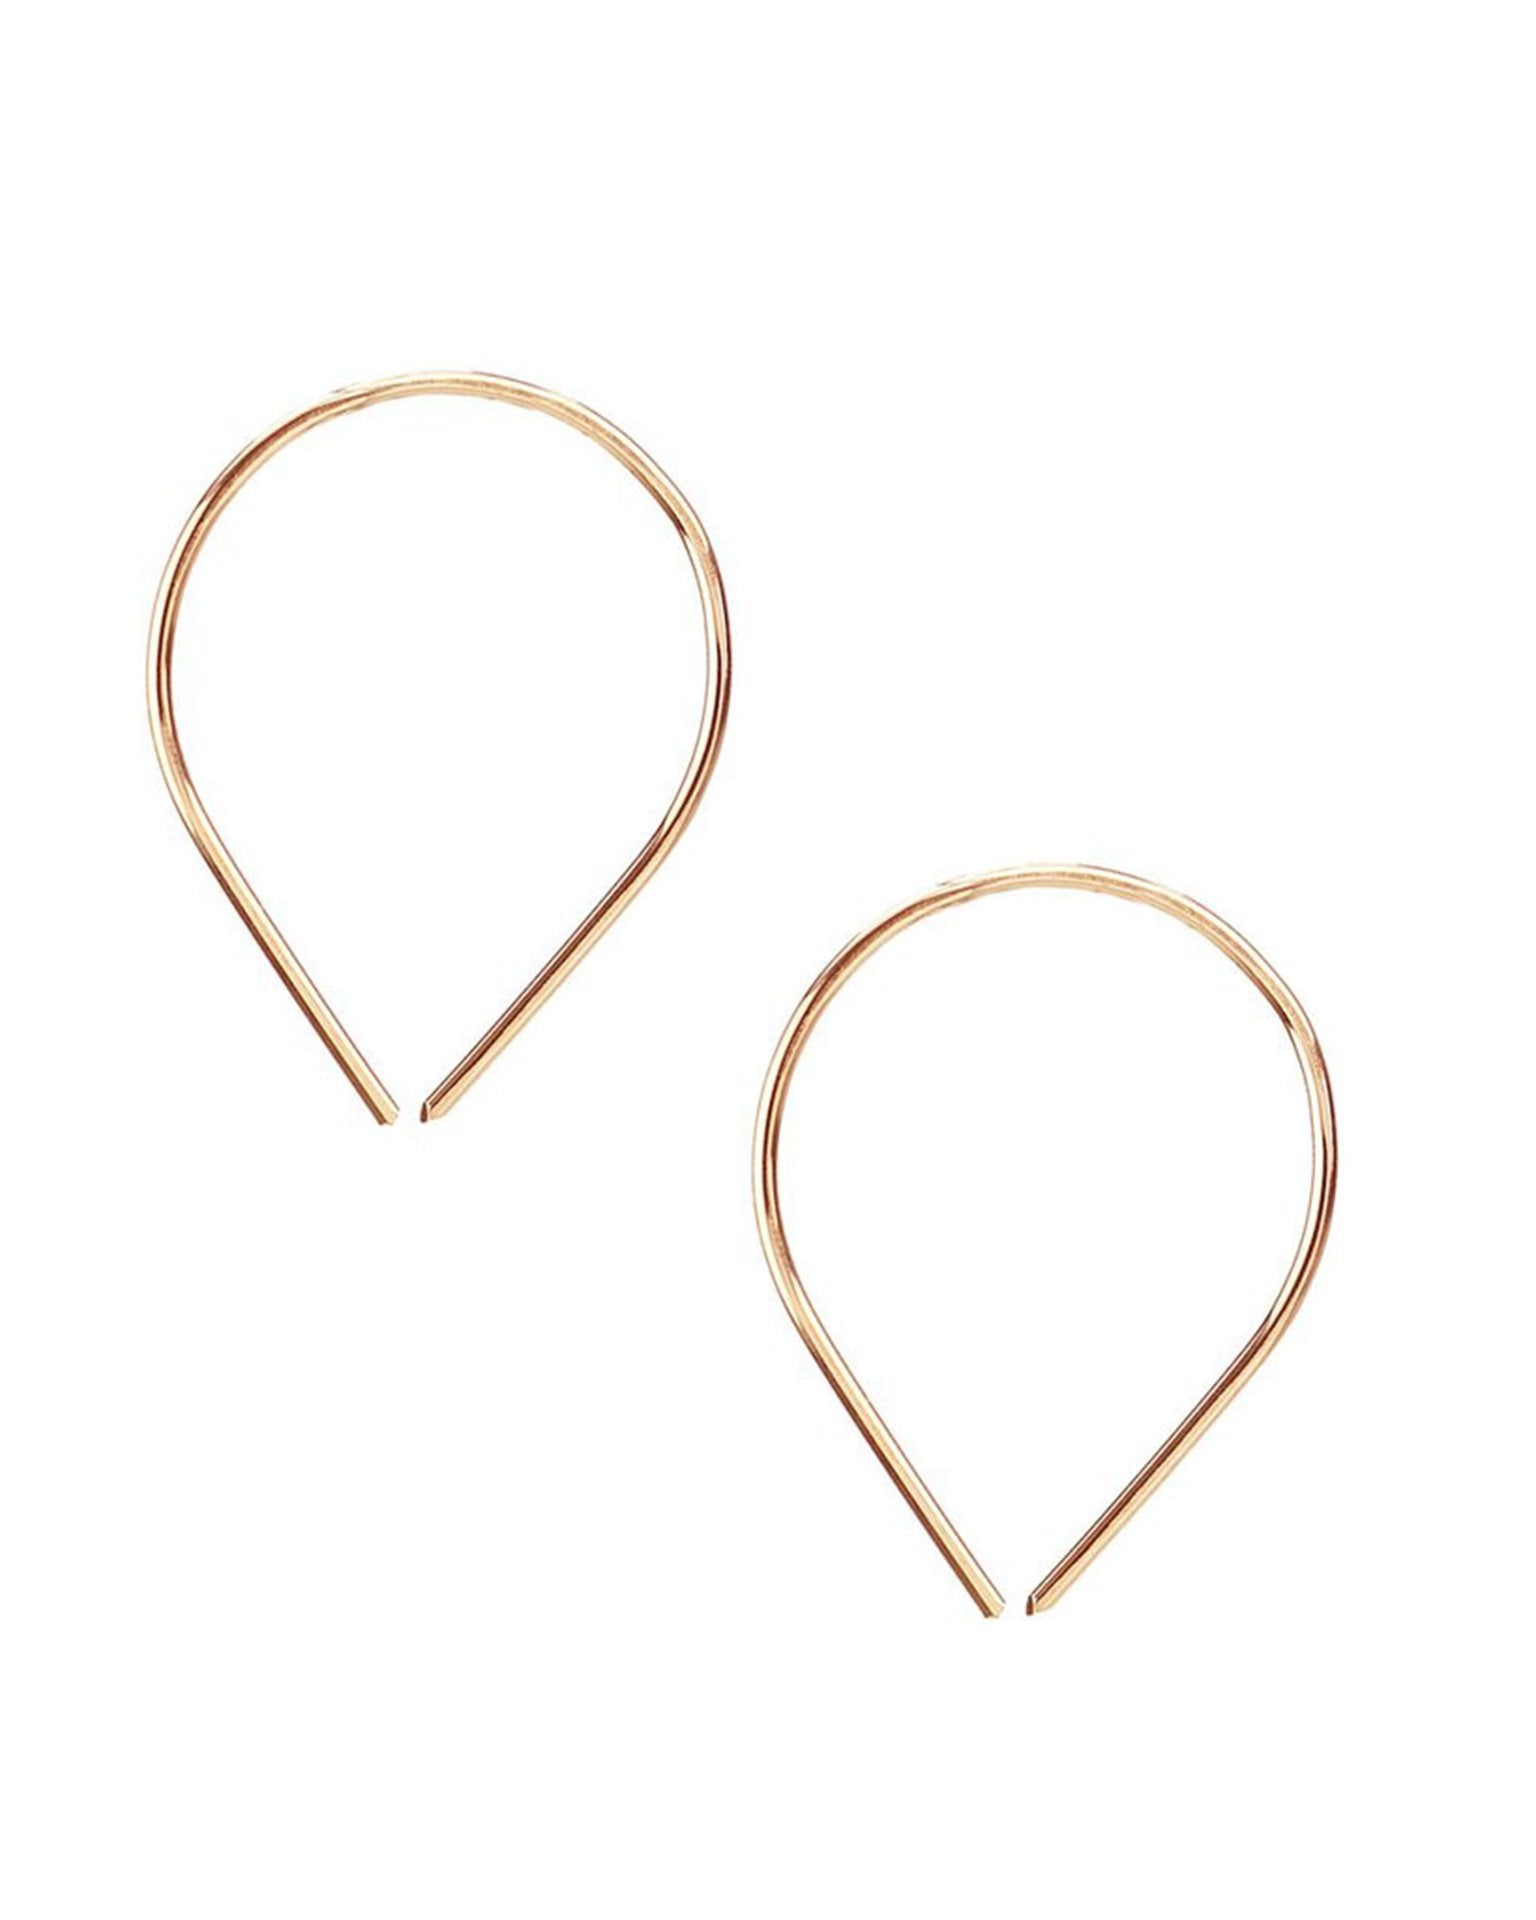 Kris Nations Jewelry 14K Gold-Filled / O/S Balloon Pull Through Hoops